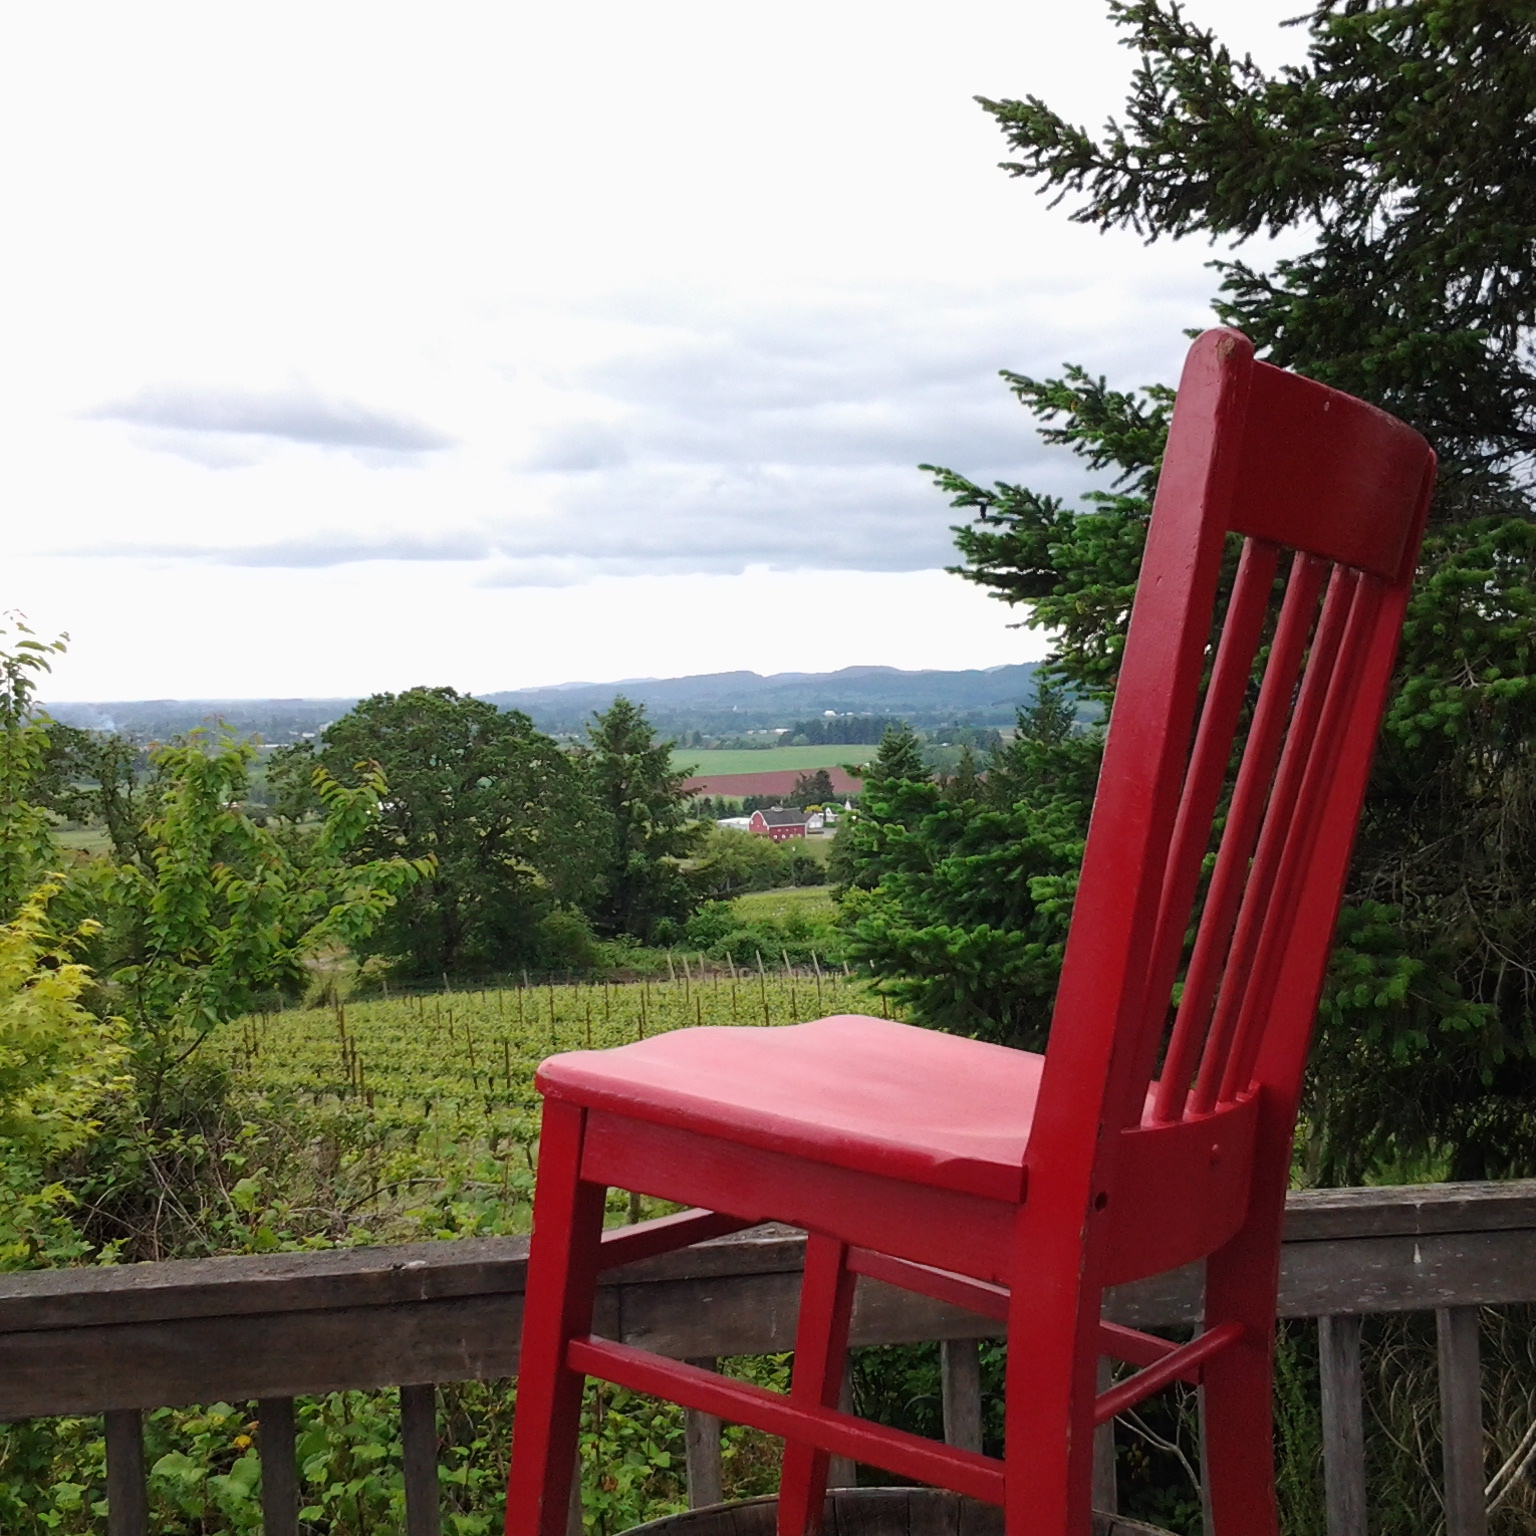 Commanding views of the Willamette Valley